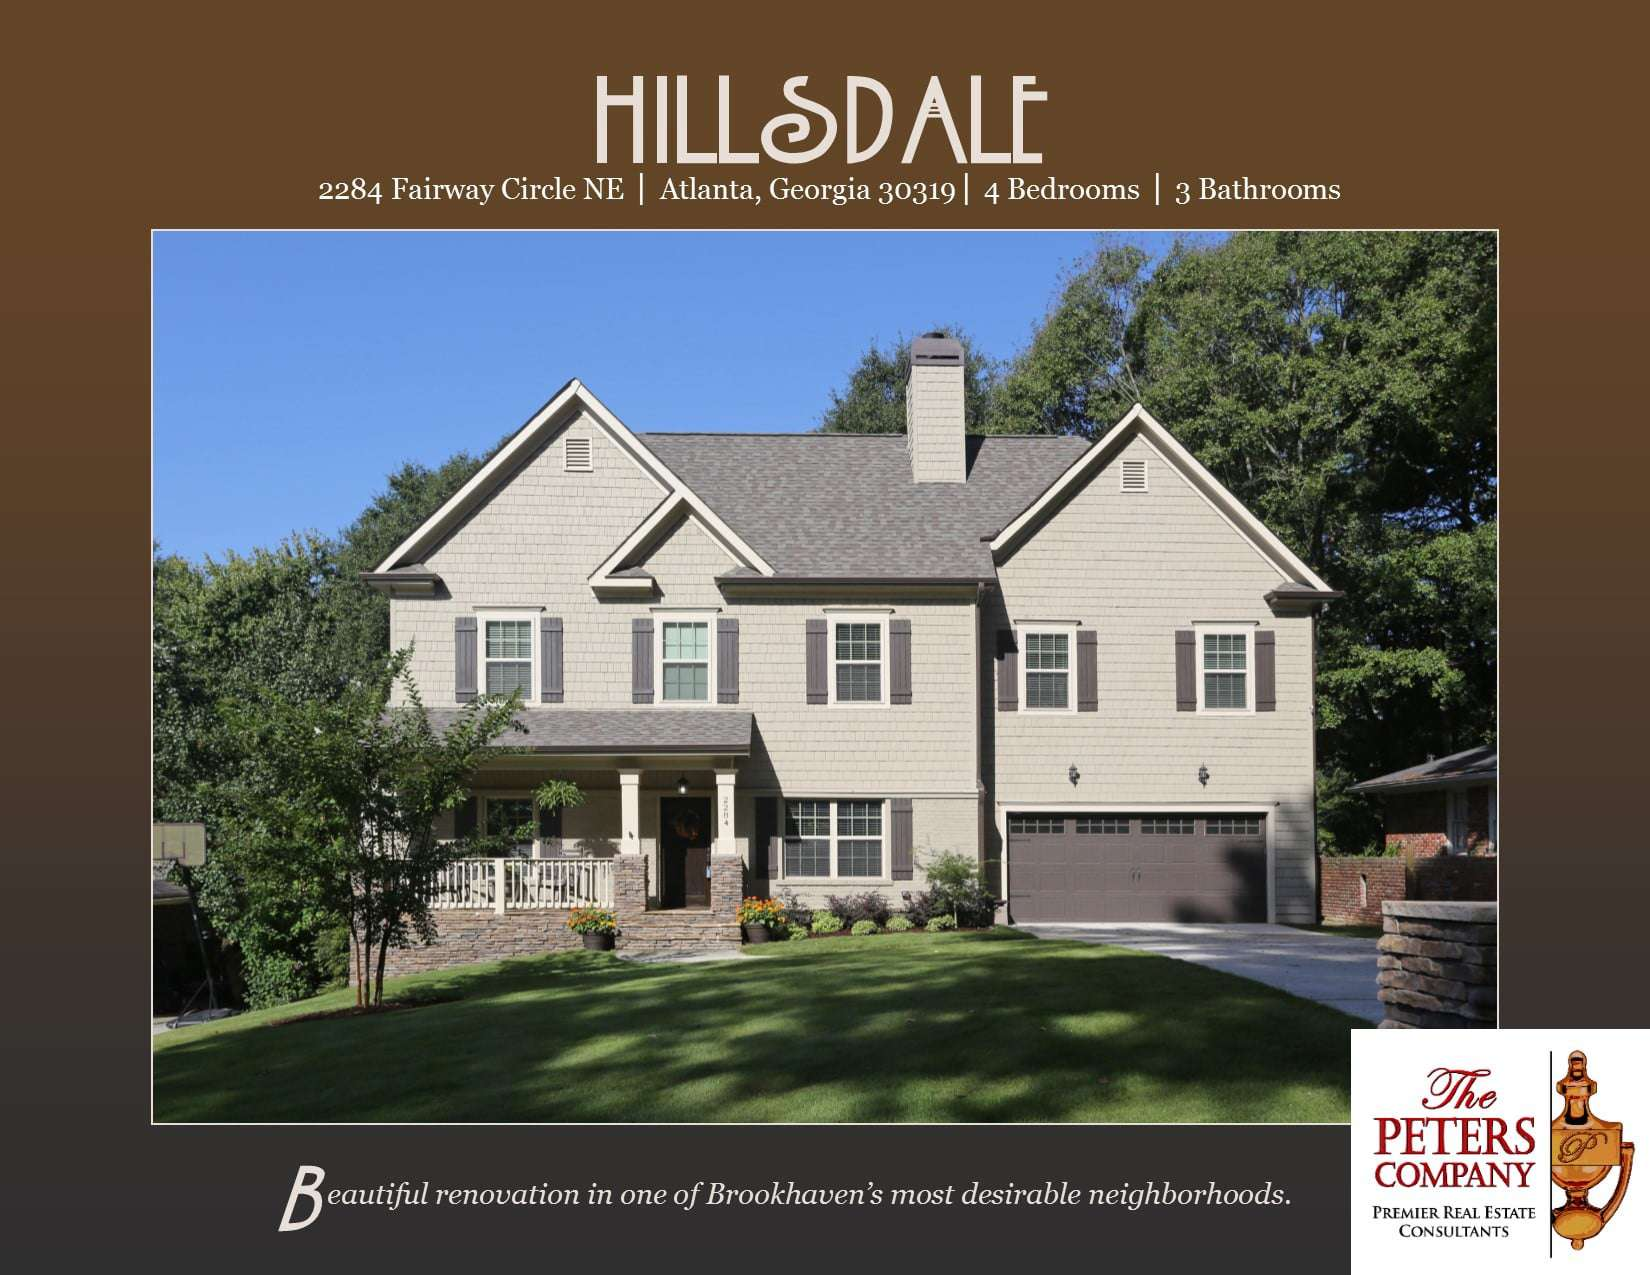 Just Listed :: Amazing Renovated Home in Brookhaven's Hillsdale | The Peters Company